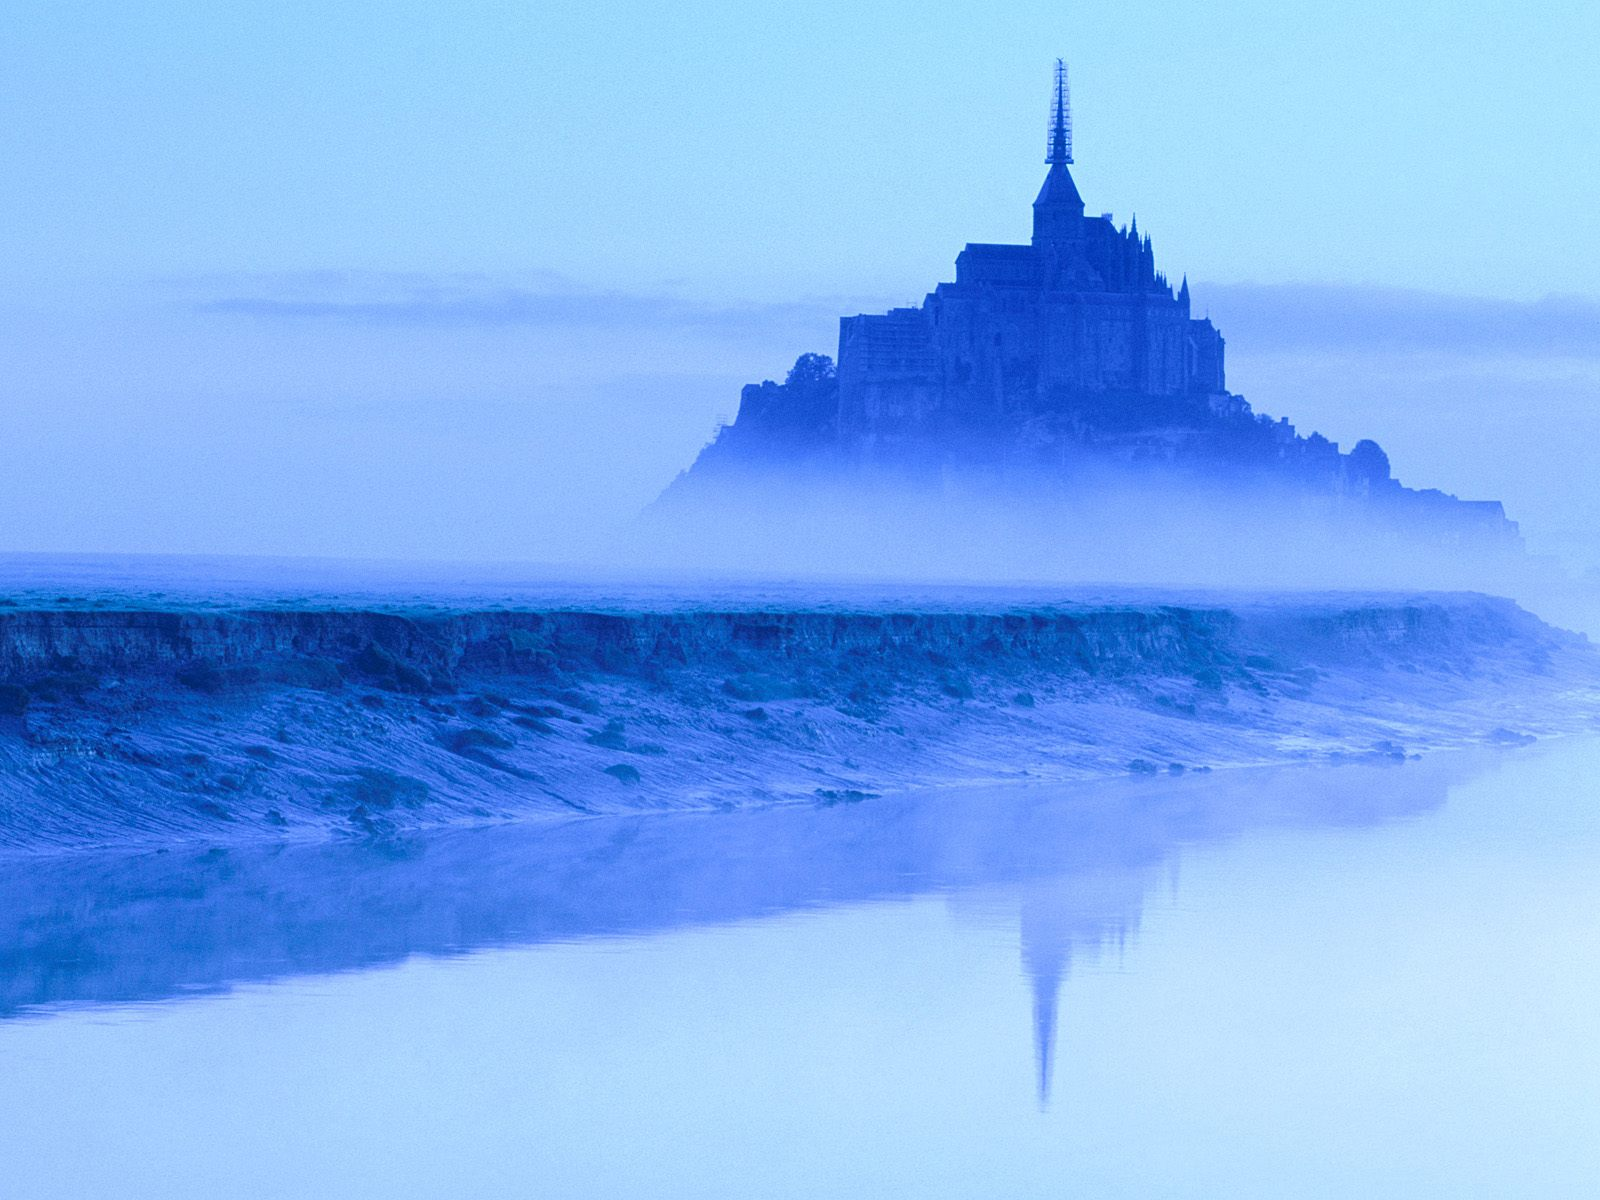 Mont St. Michel at Dawn Normandy 1600 x 1200